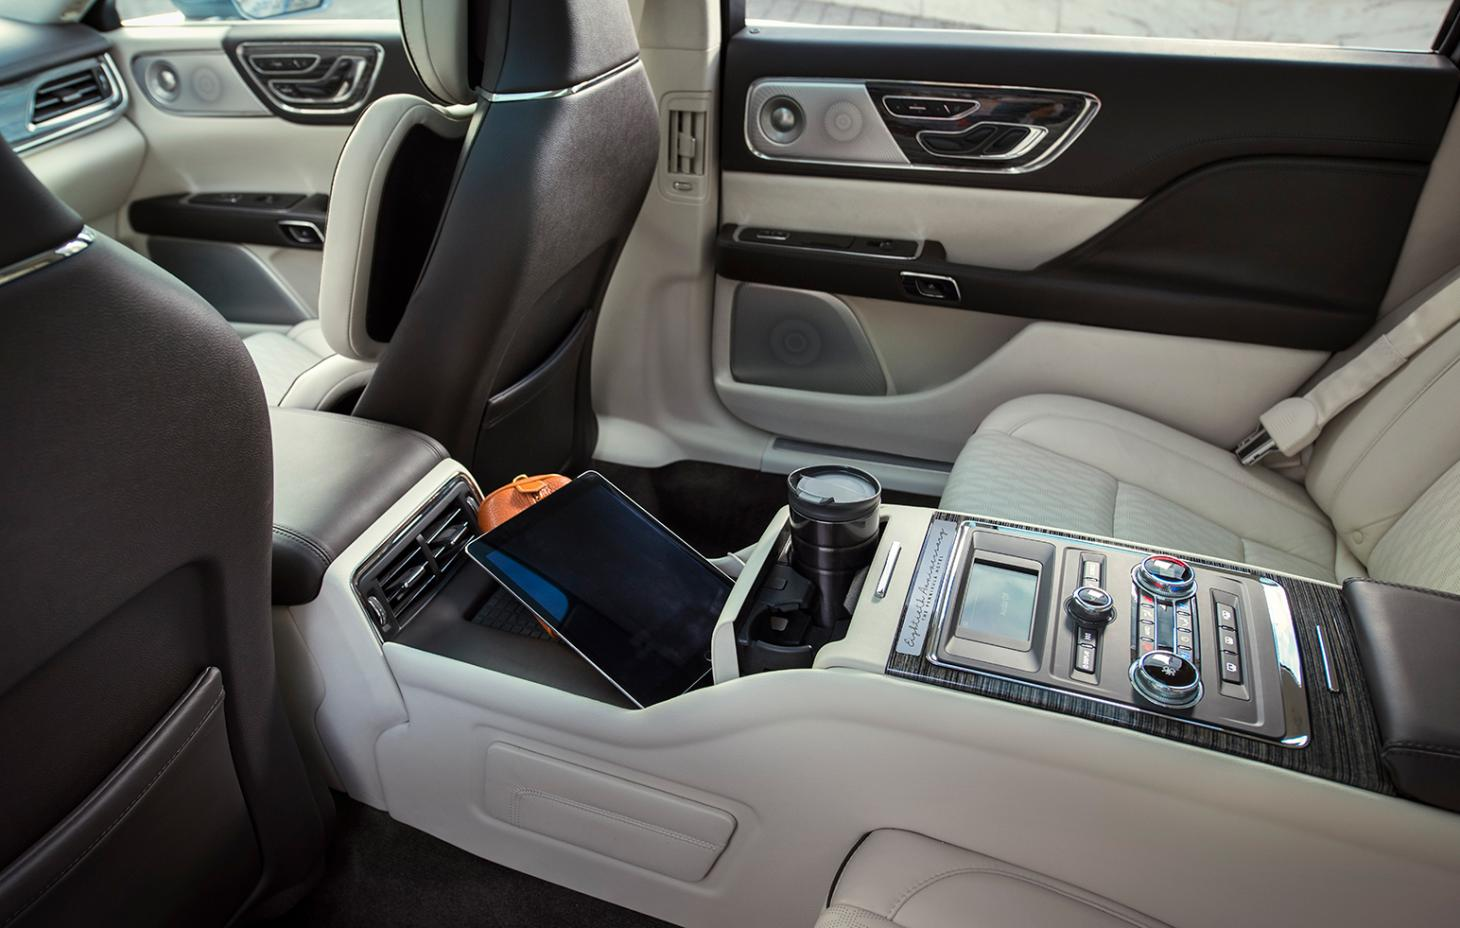 Inside the Lincoln Continental 80th anniversary edition model